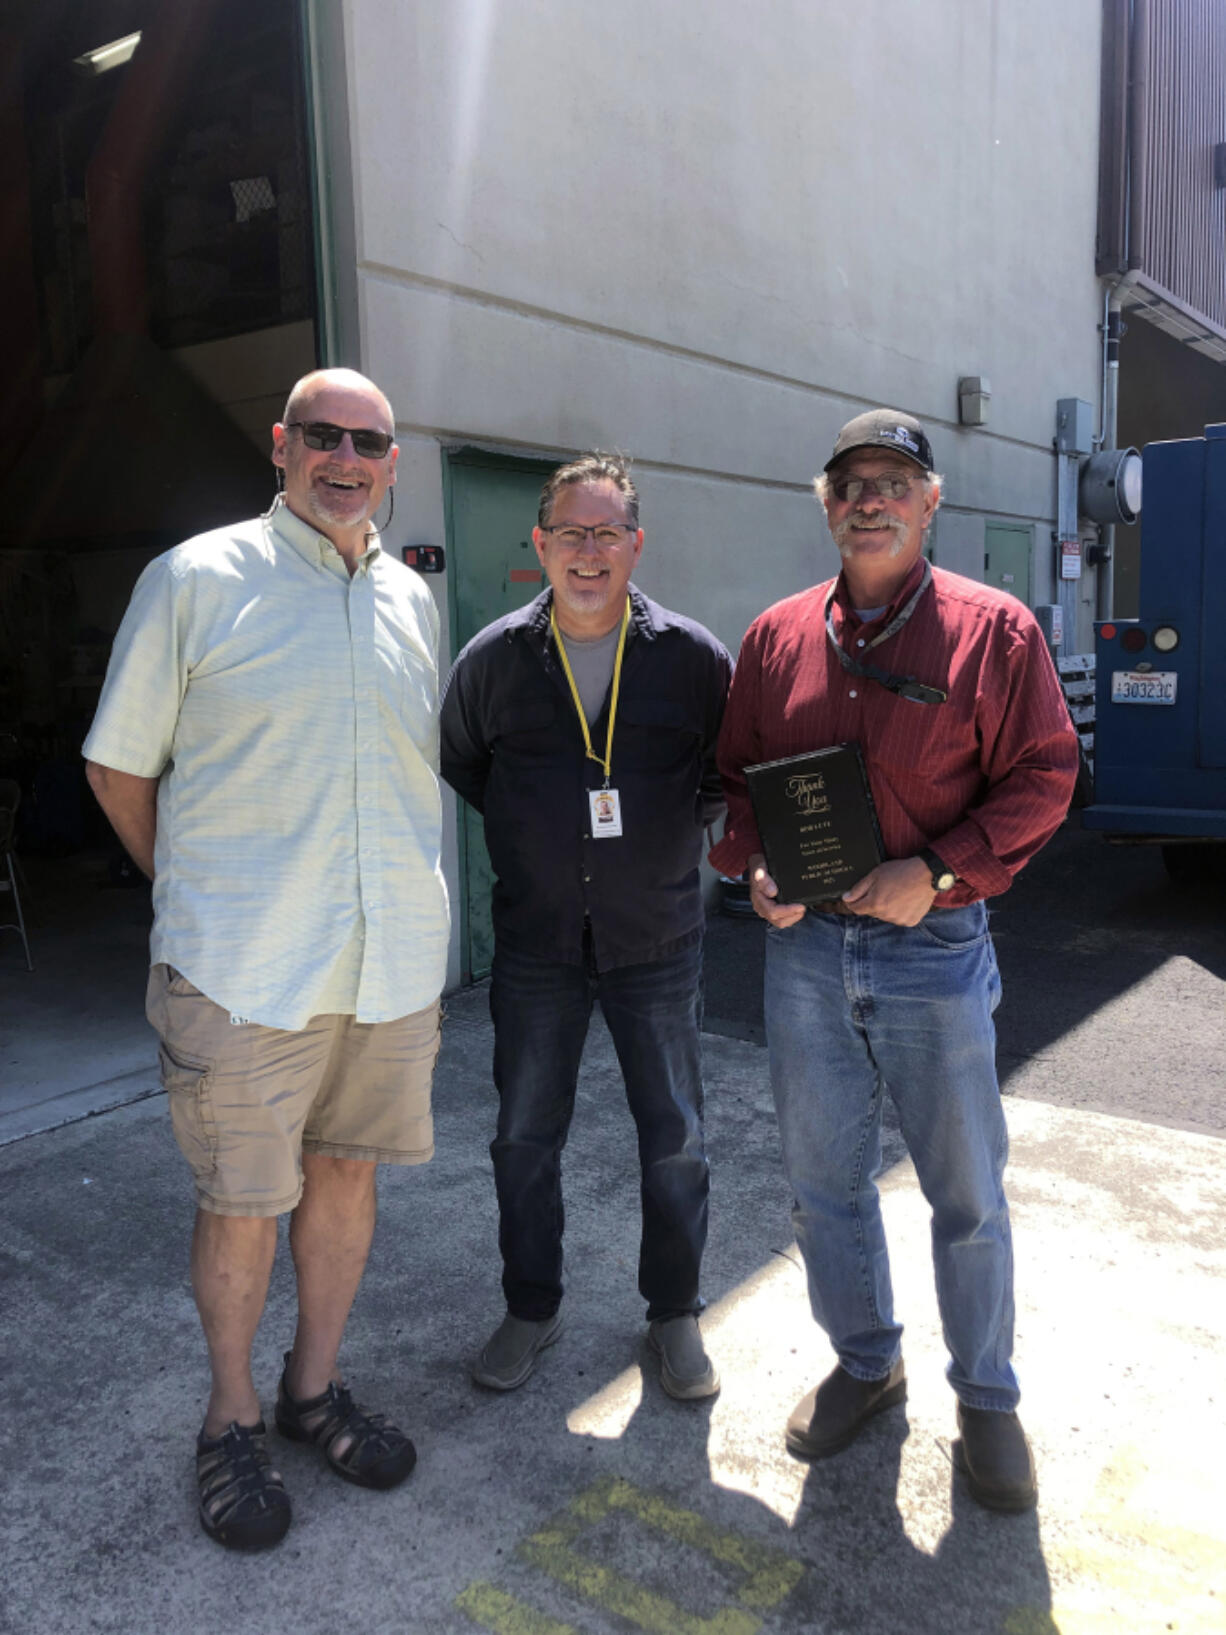 WOODLAND: Superintendent Michael Green, from left, and KWRL Director Shannon Barnett celebrate with Bob Lute, who retired this year after 42 years of service.